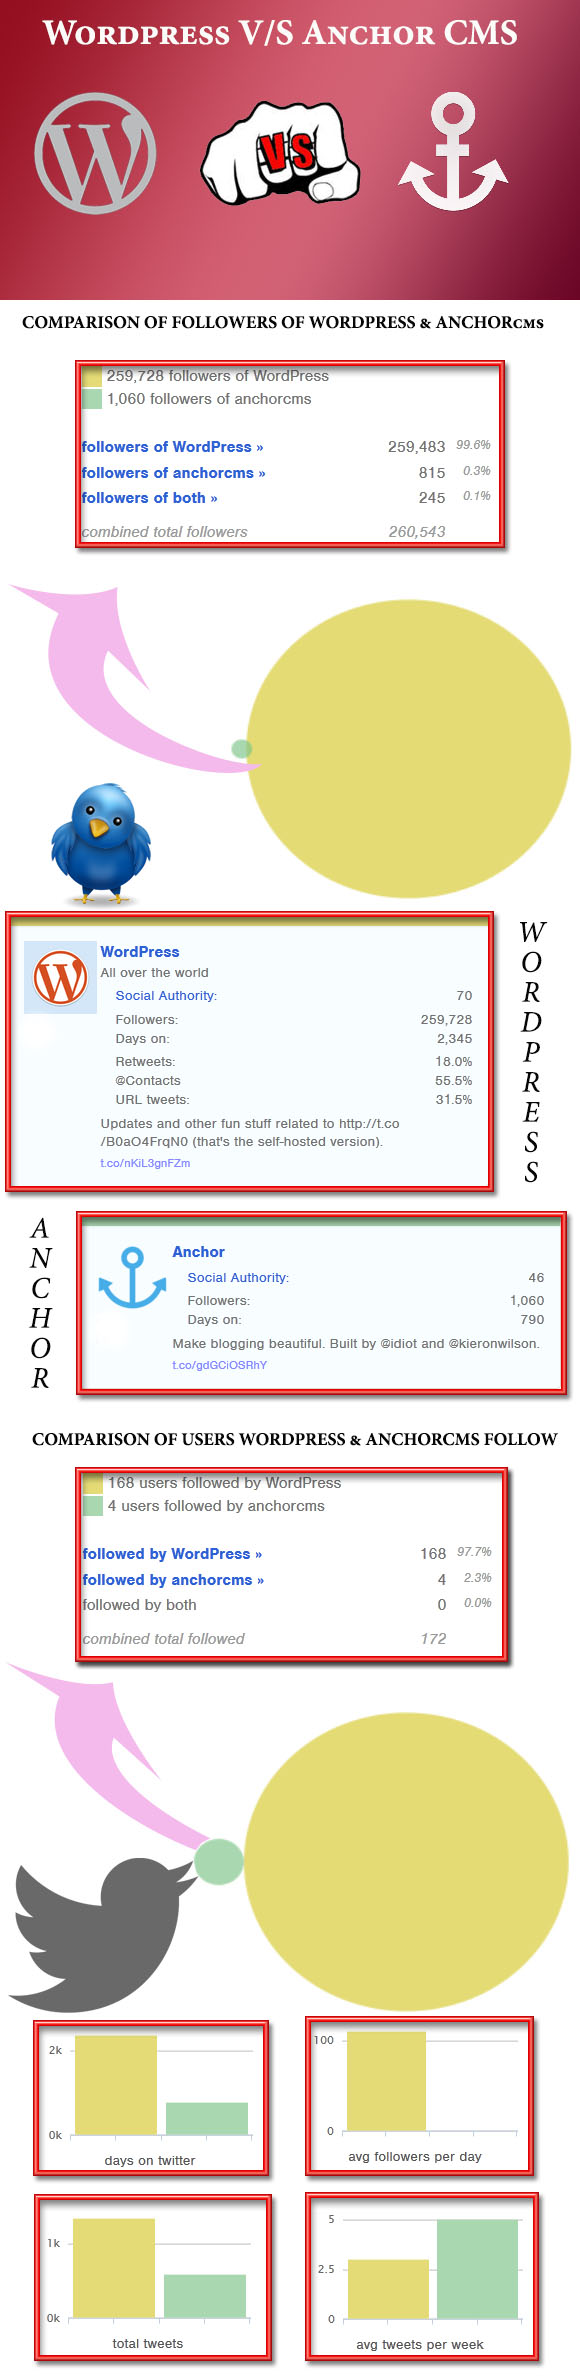 Wordpress-vs-Anchor-cms-infographic